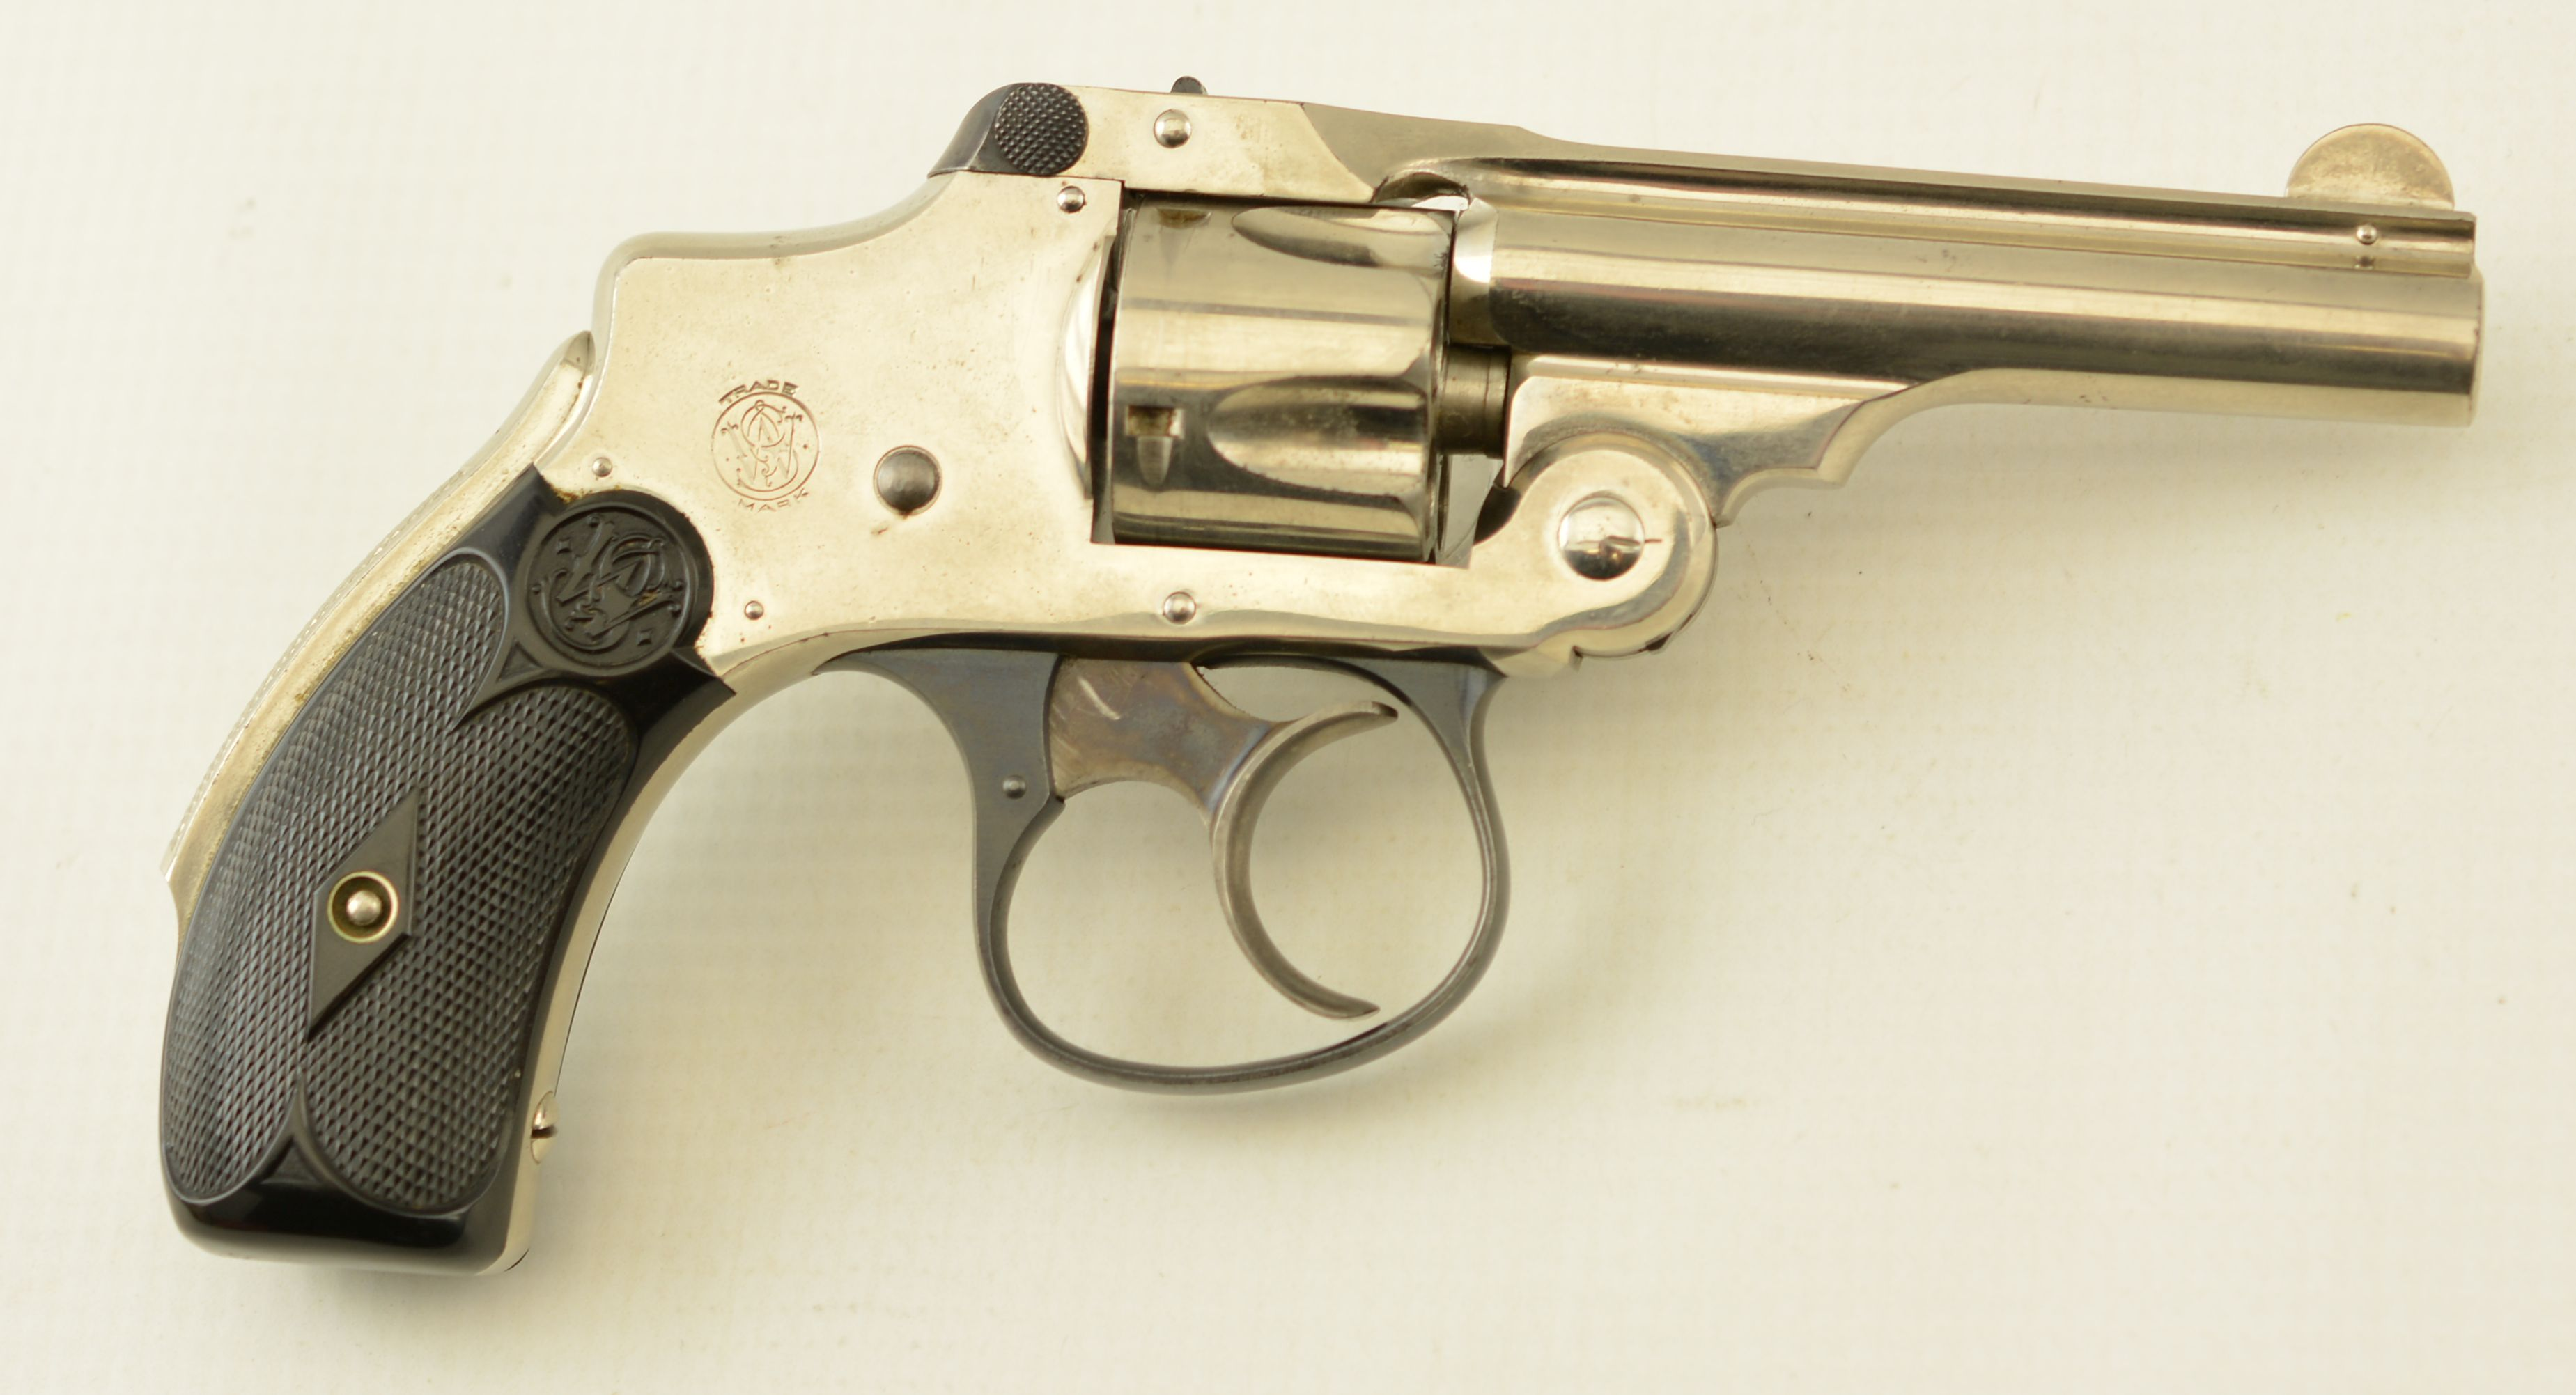 smith and wesson 32 hammerless revolver serial number